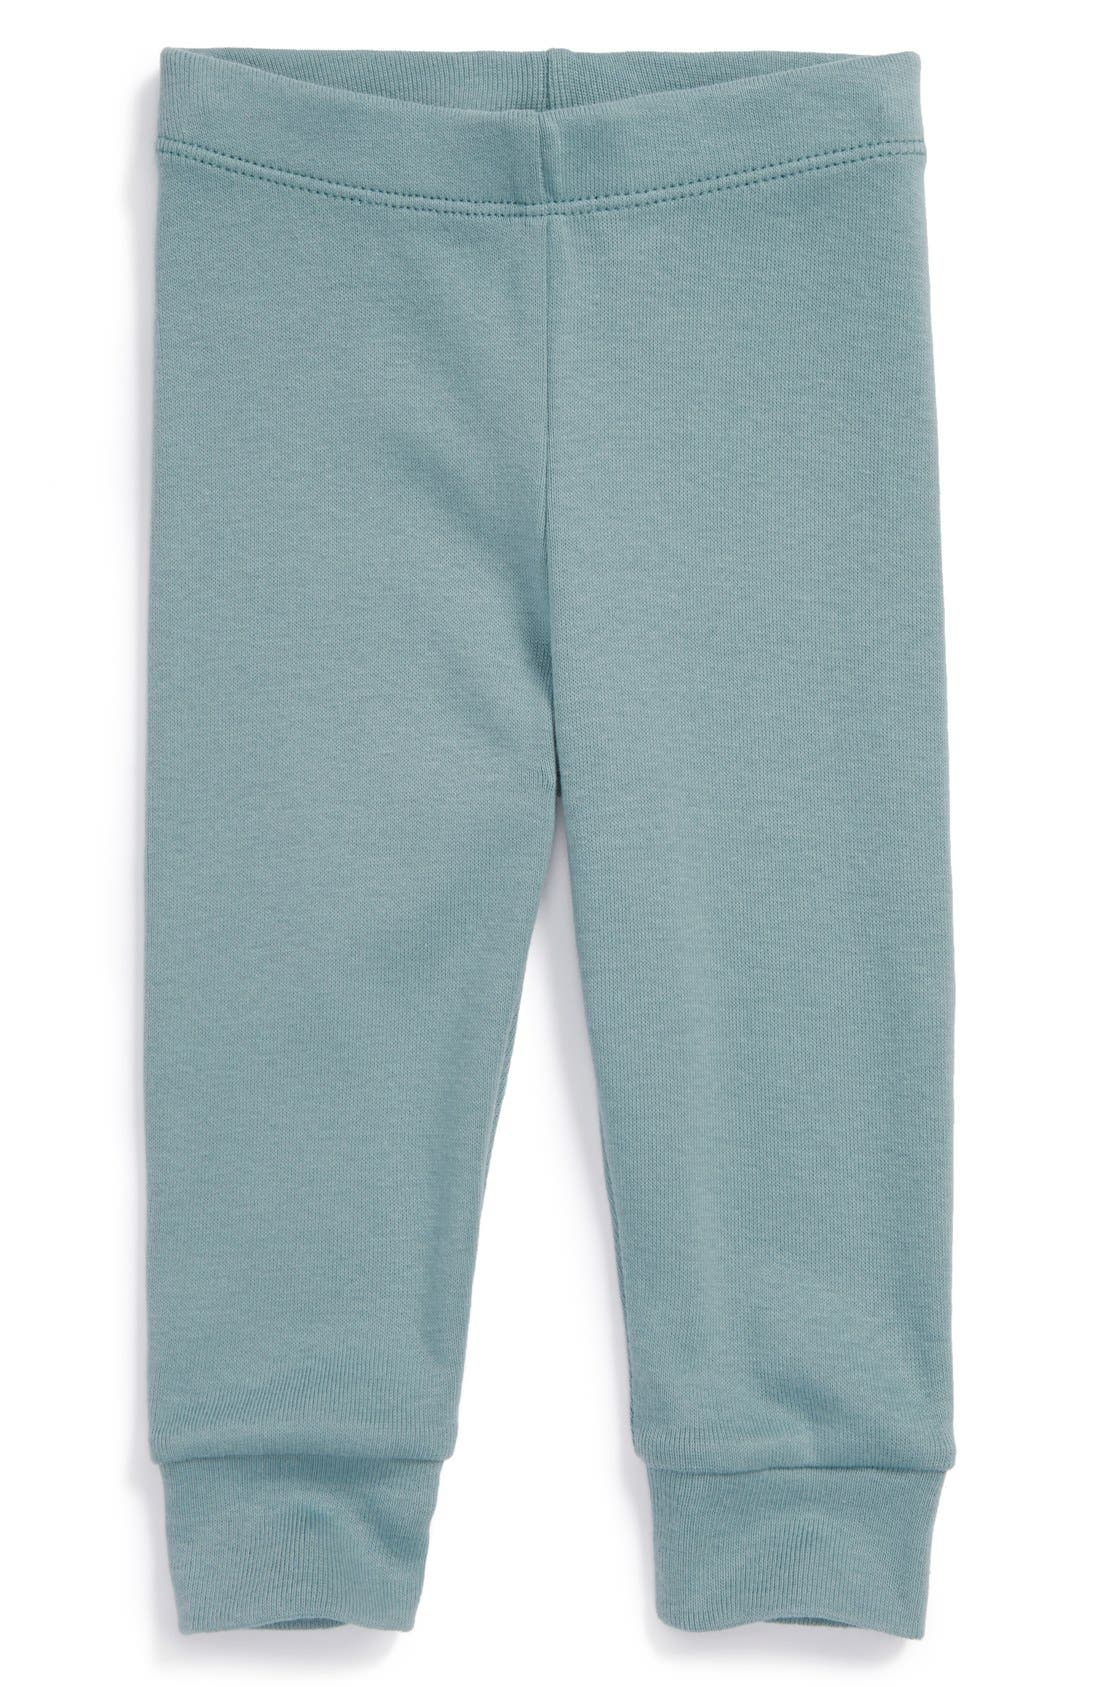 Alternate Image 1 Selected - Tea Collection Rib Knit Pants (Baby Boys)